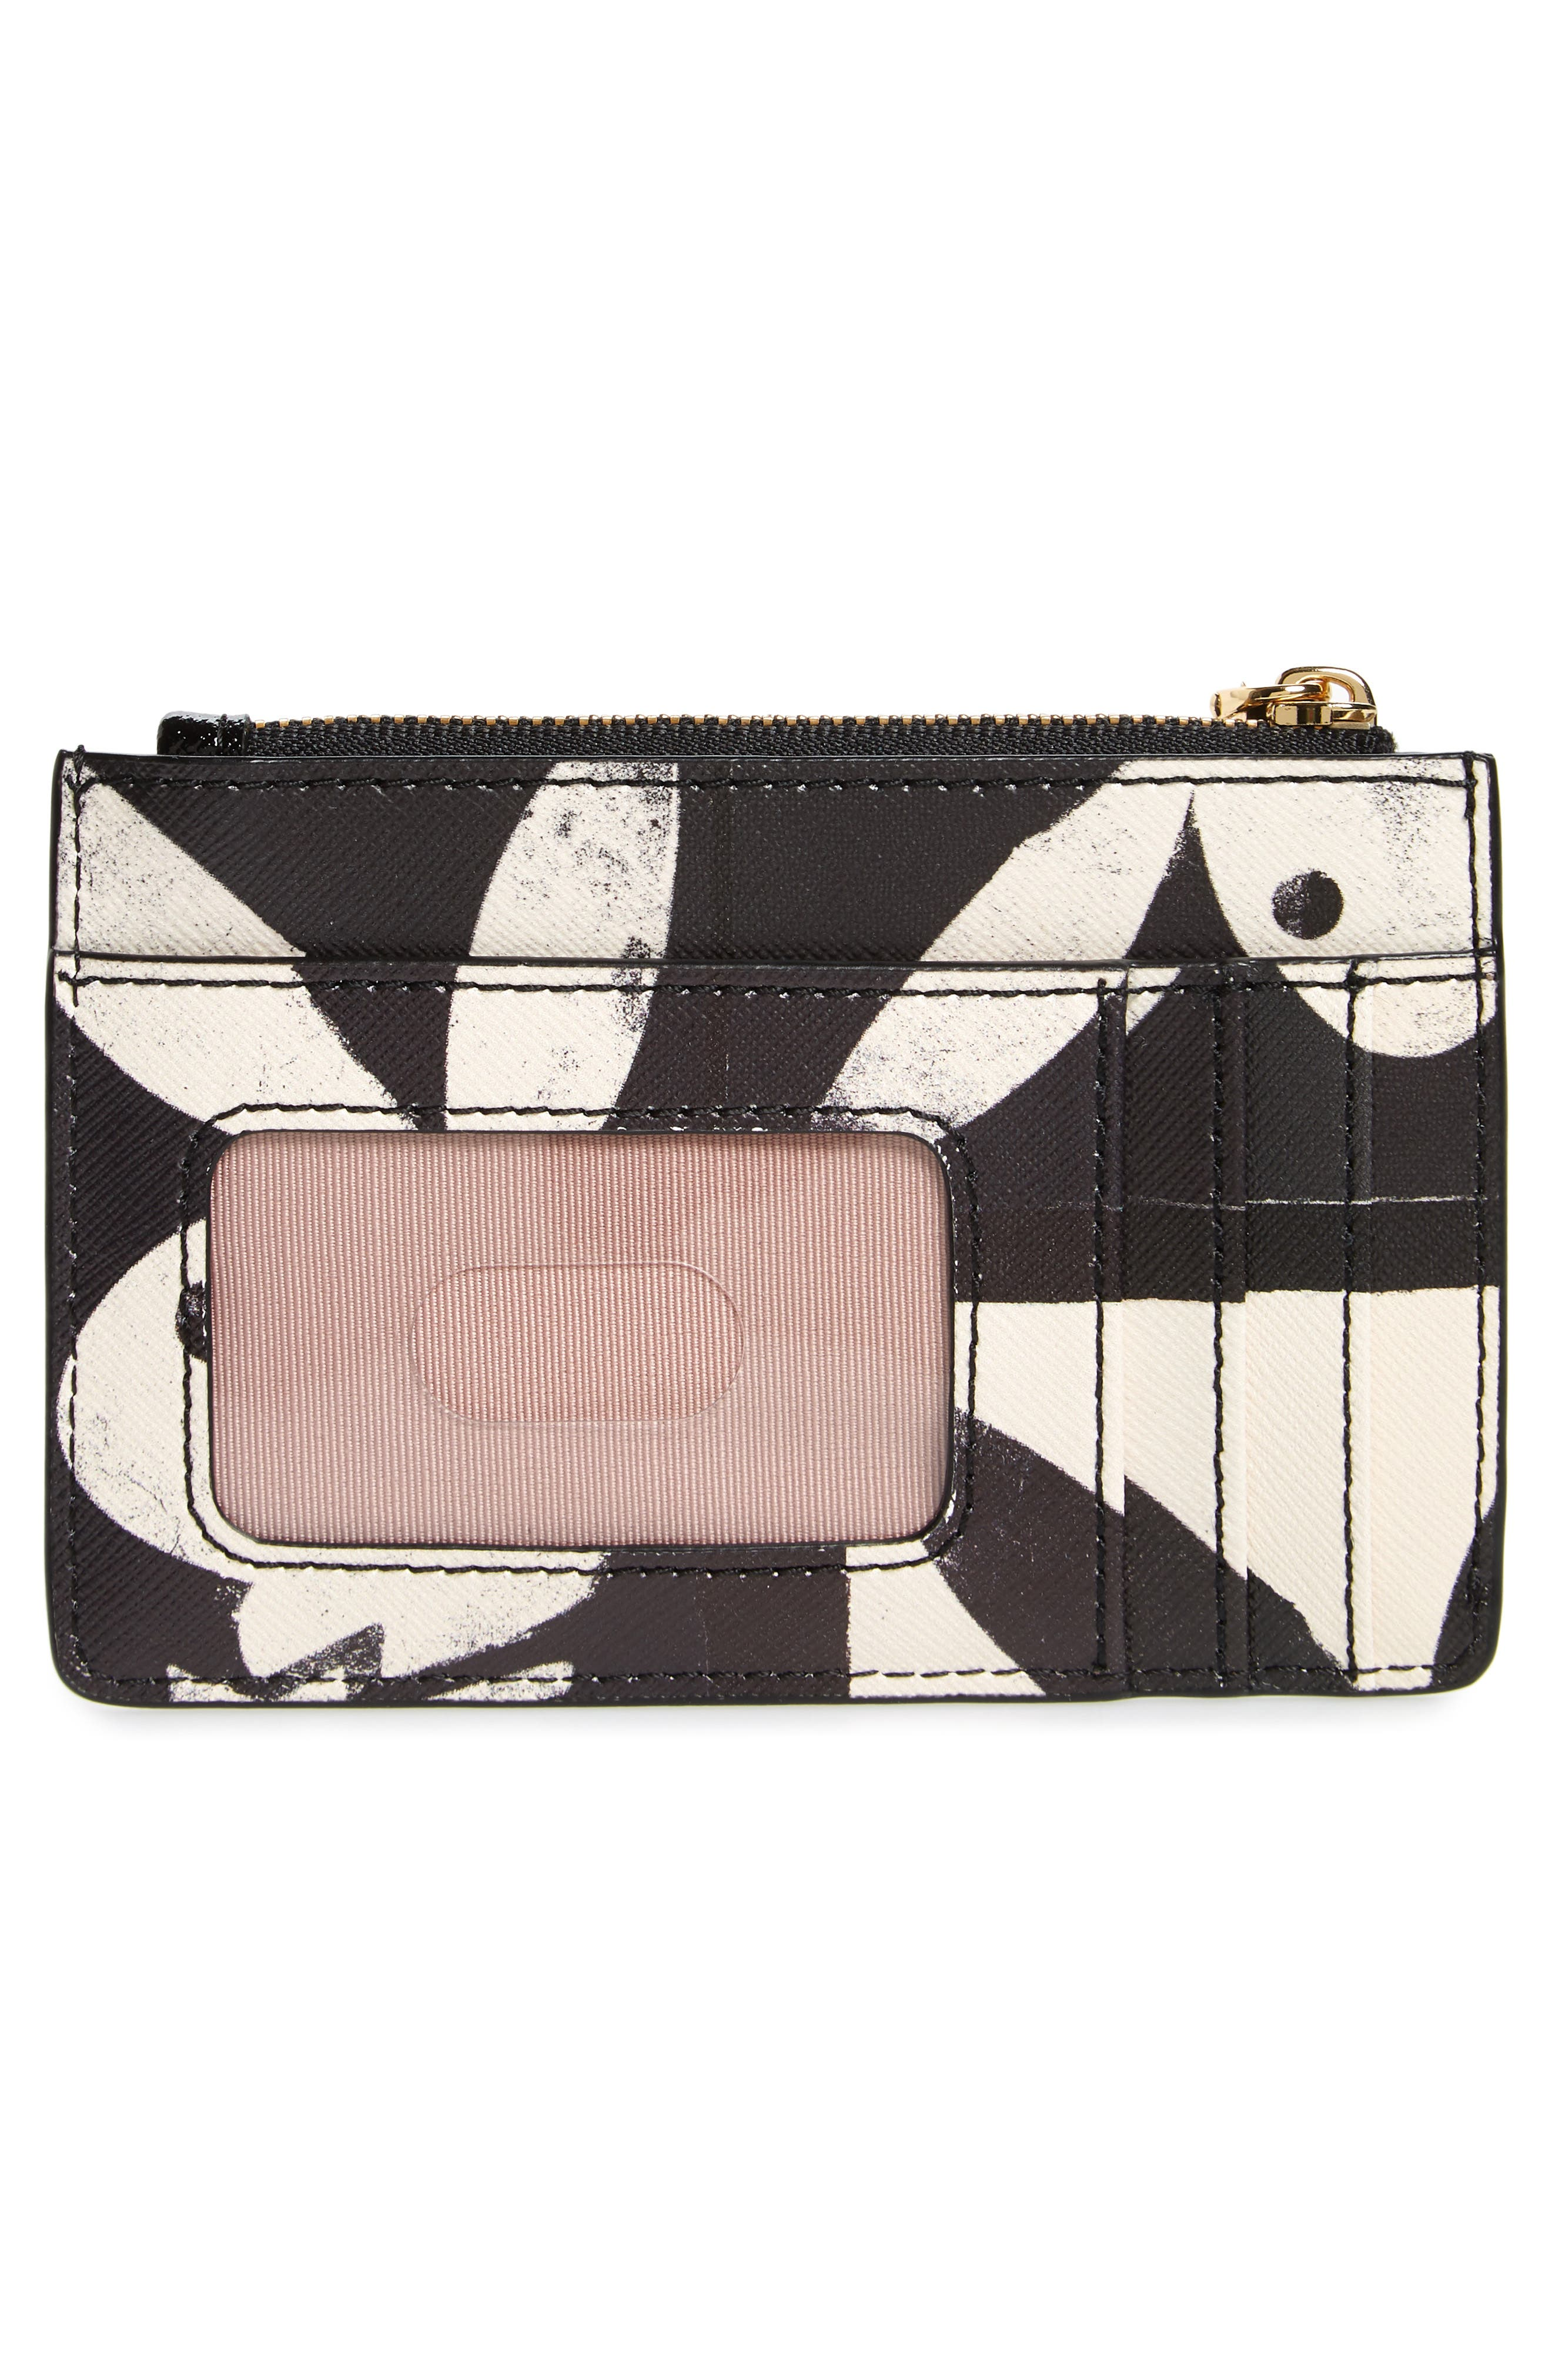 Snapshot Playboy<sup>®</sup> Leather Zip Wallet,                             Alternate thumbnail 3, color,                             Black Multi